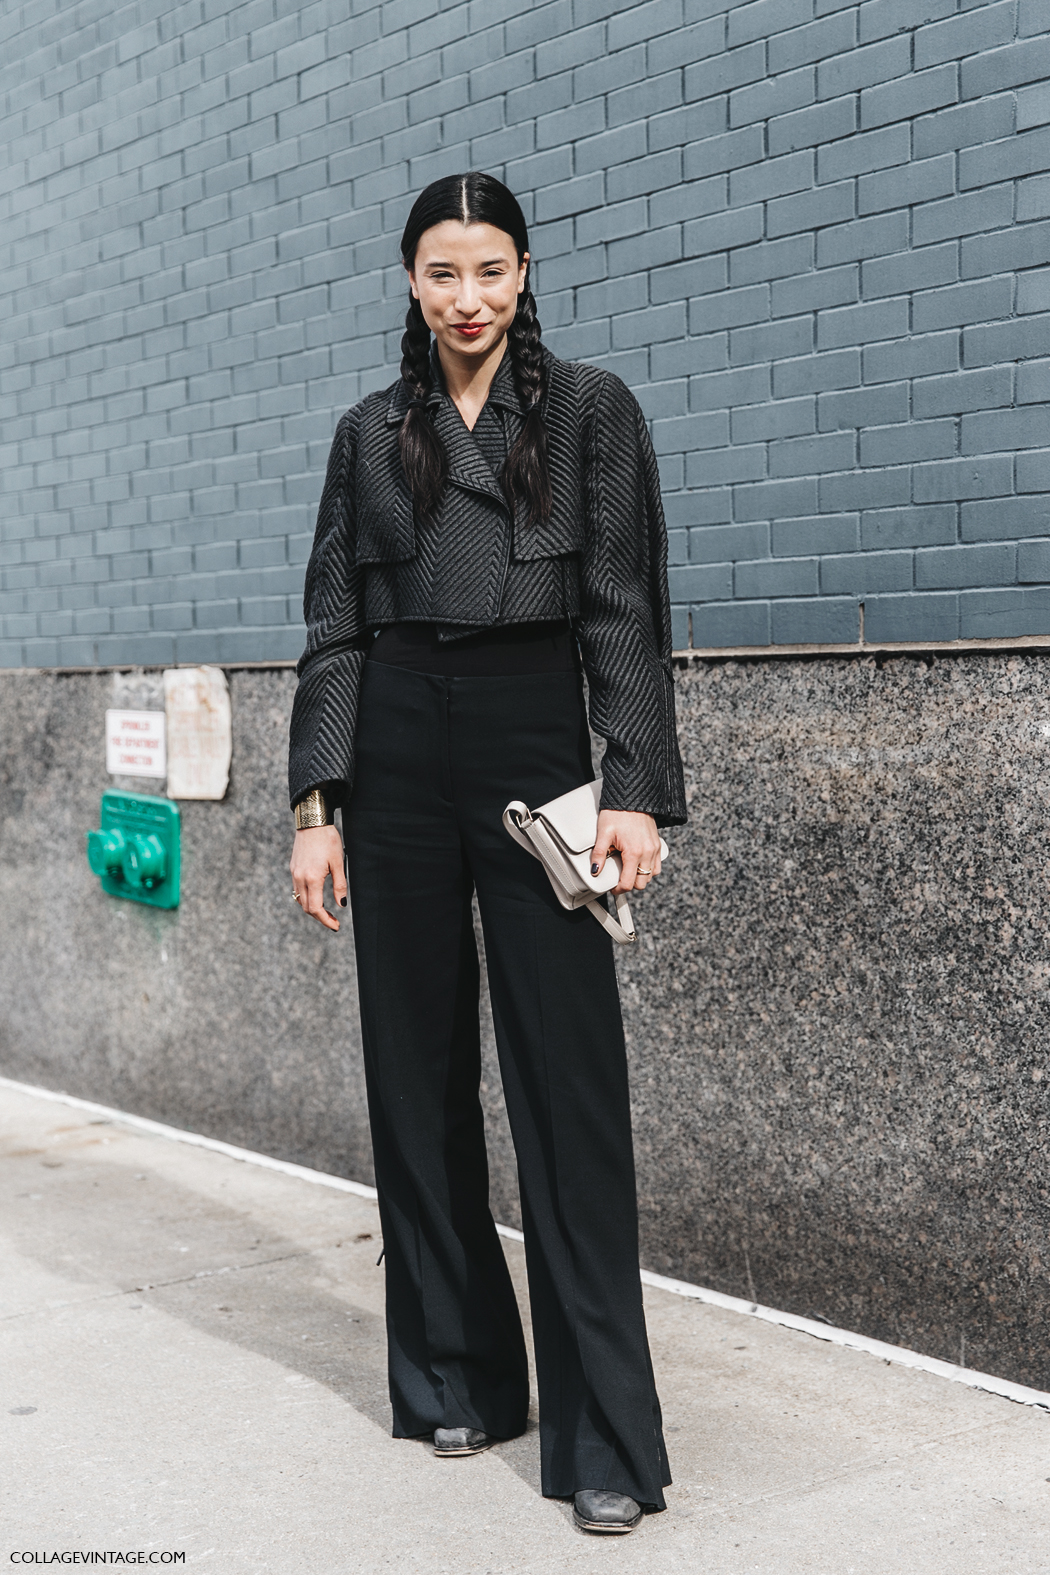 NYFW-New_York_Fashion_Week-Fall_Winter-17-Street_Style-Lily_Kwong-Braids-Black_Outfit-1